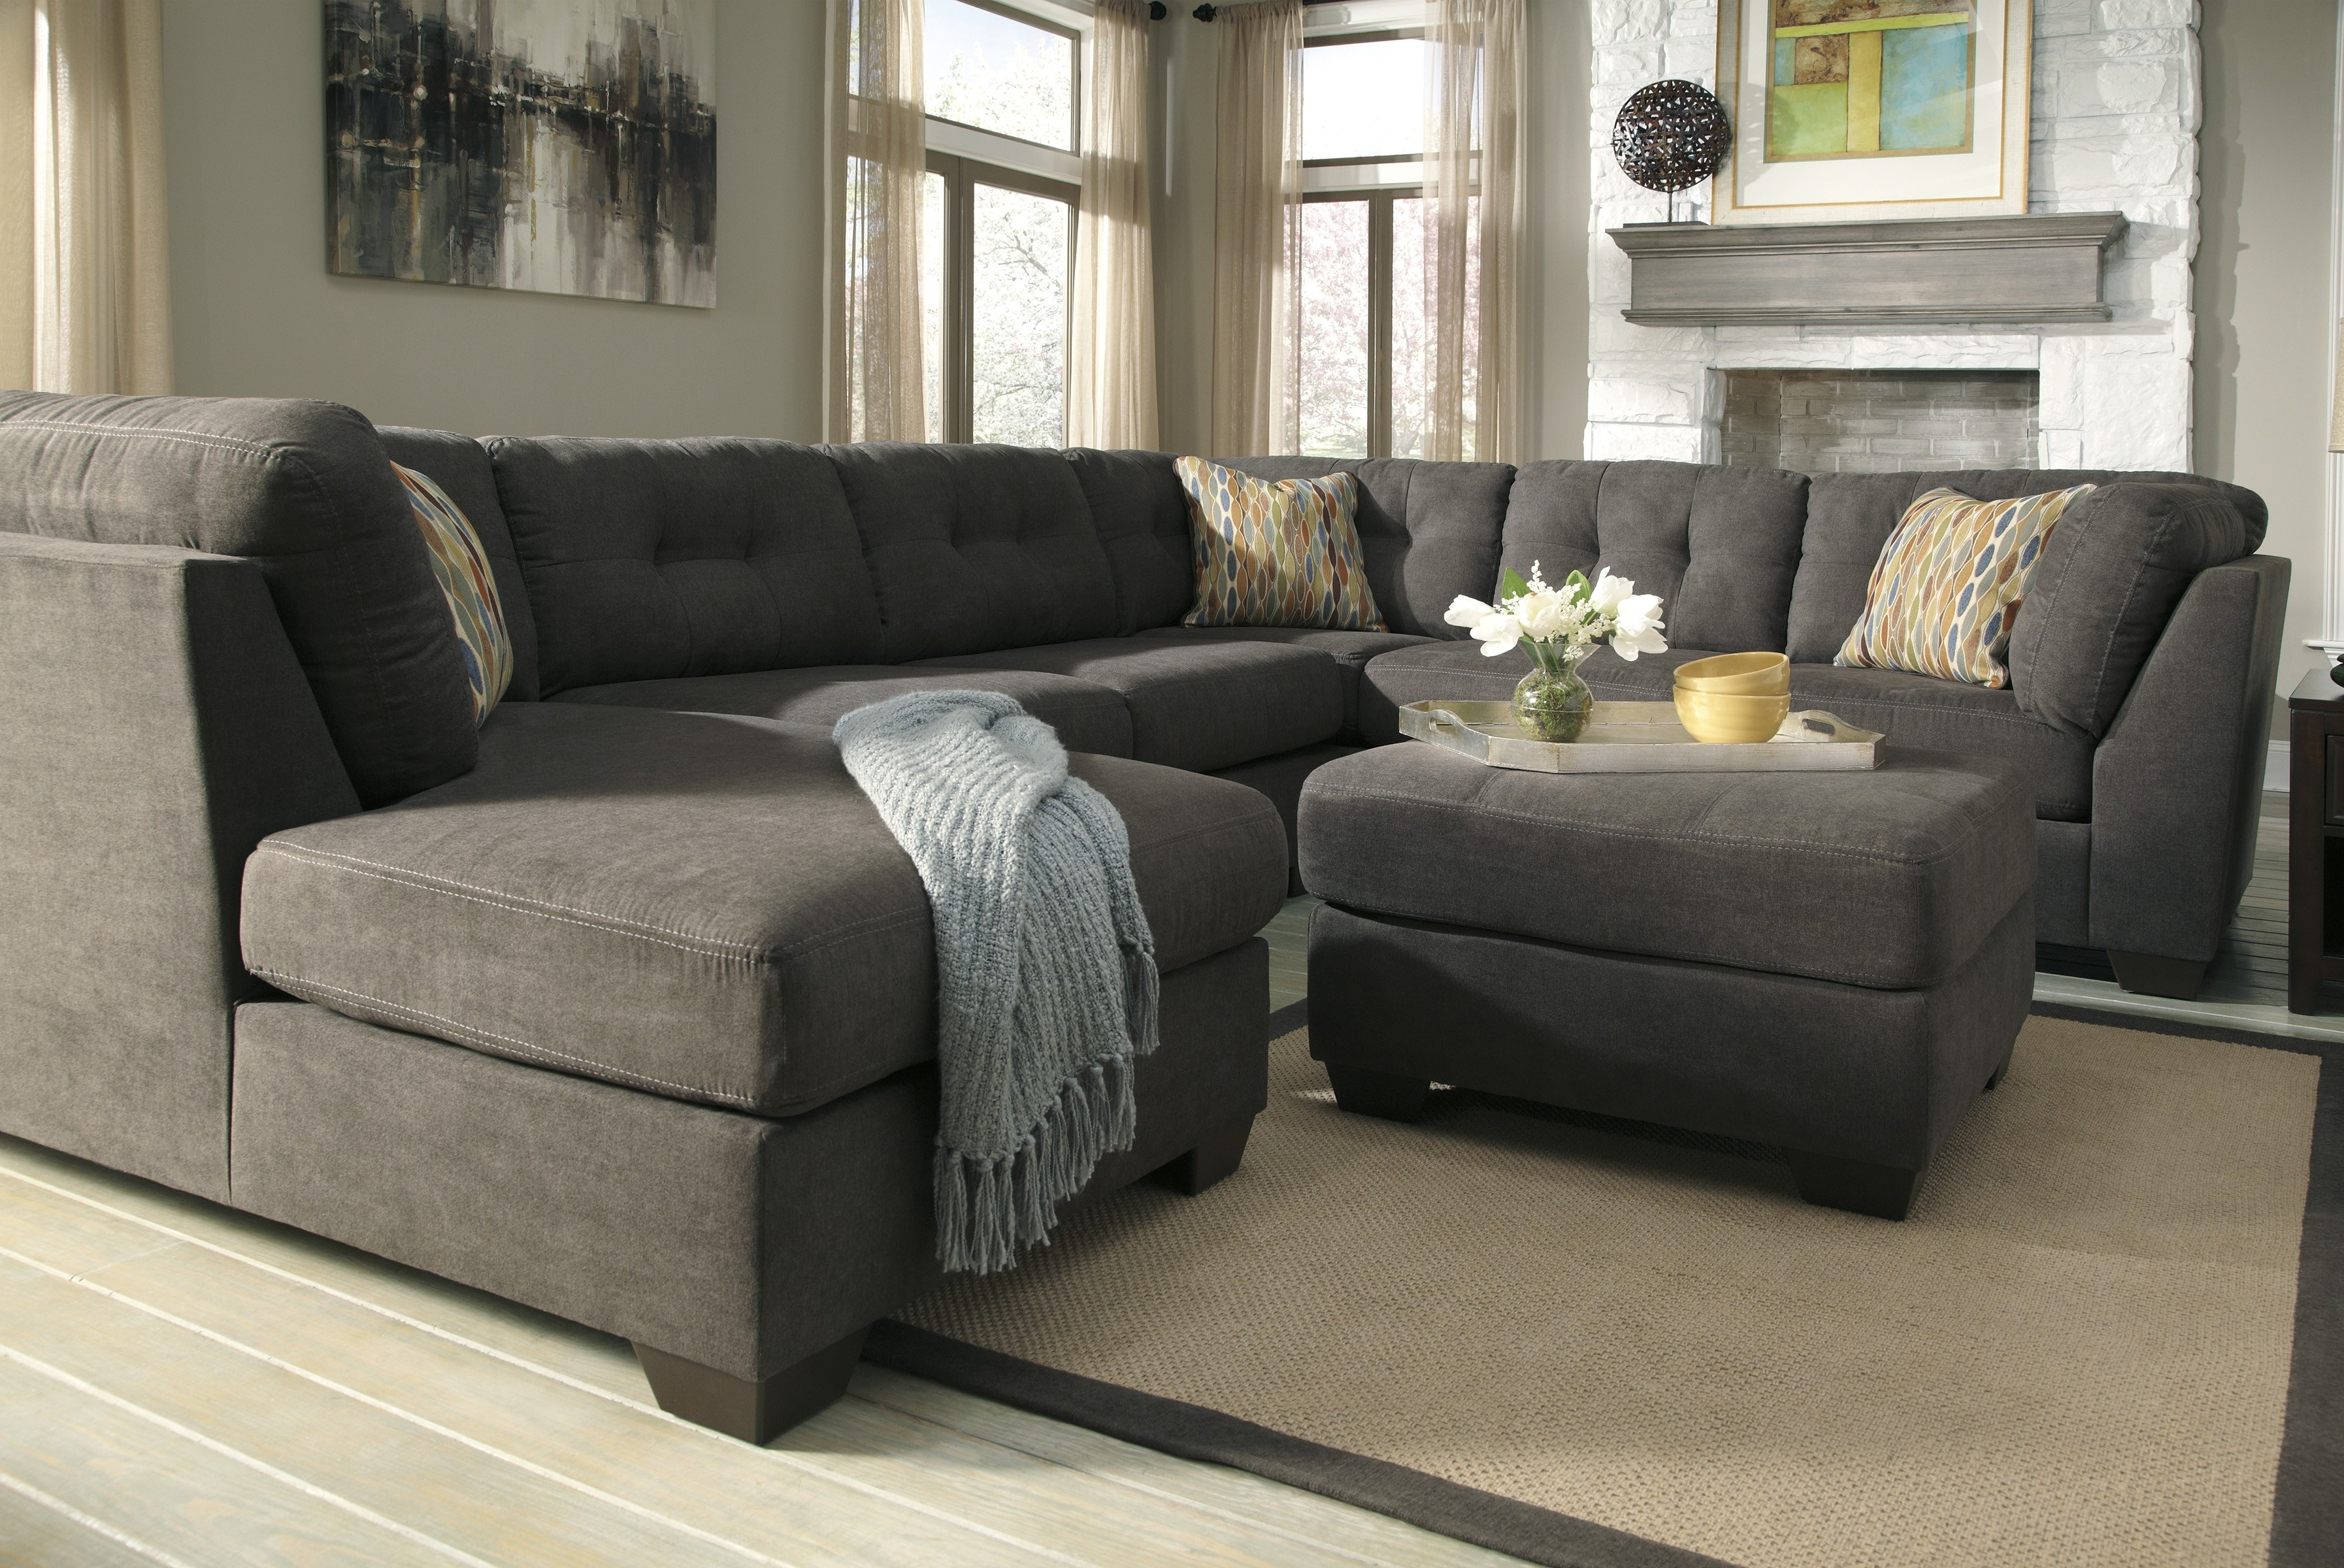 3 Piece Sectional Sleeper Sofas In Current Ashley Furniture Sectional Couch Grey Sleeper Sofa Sectional (View 11 of 15)